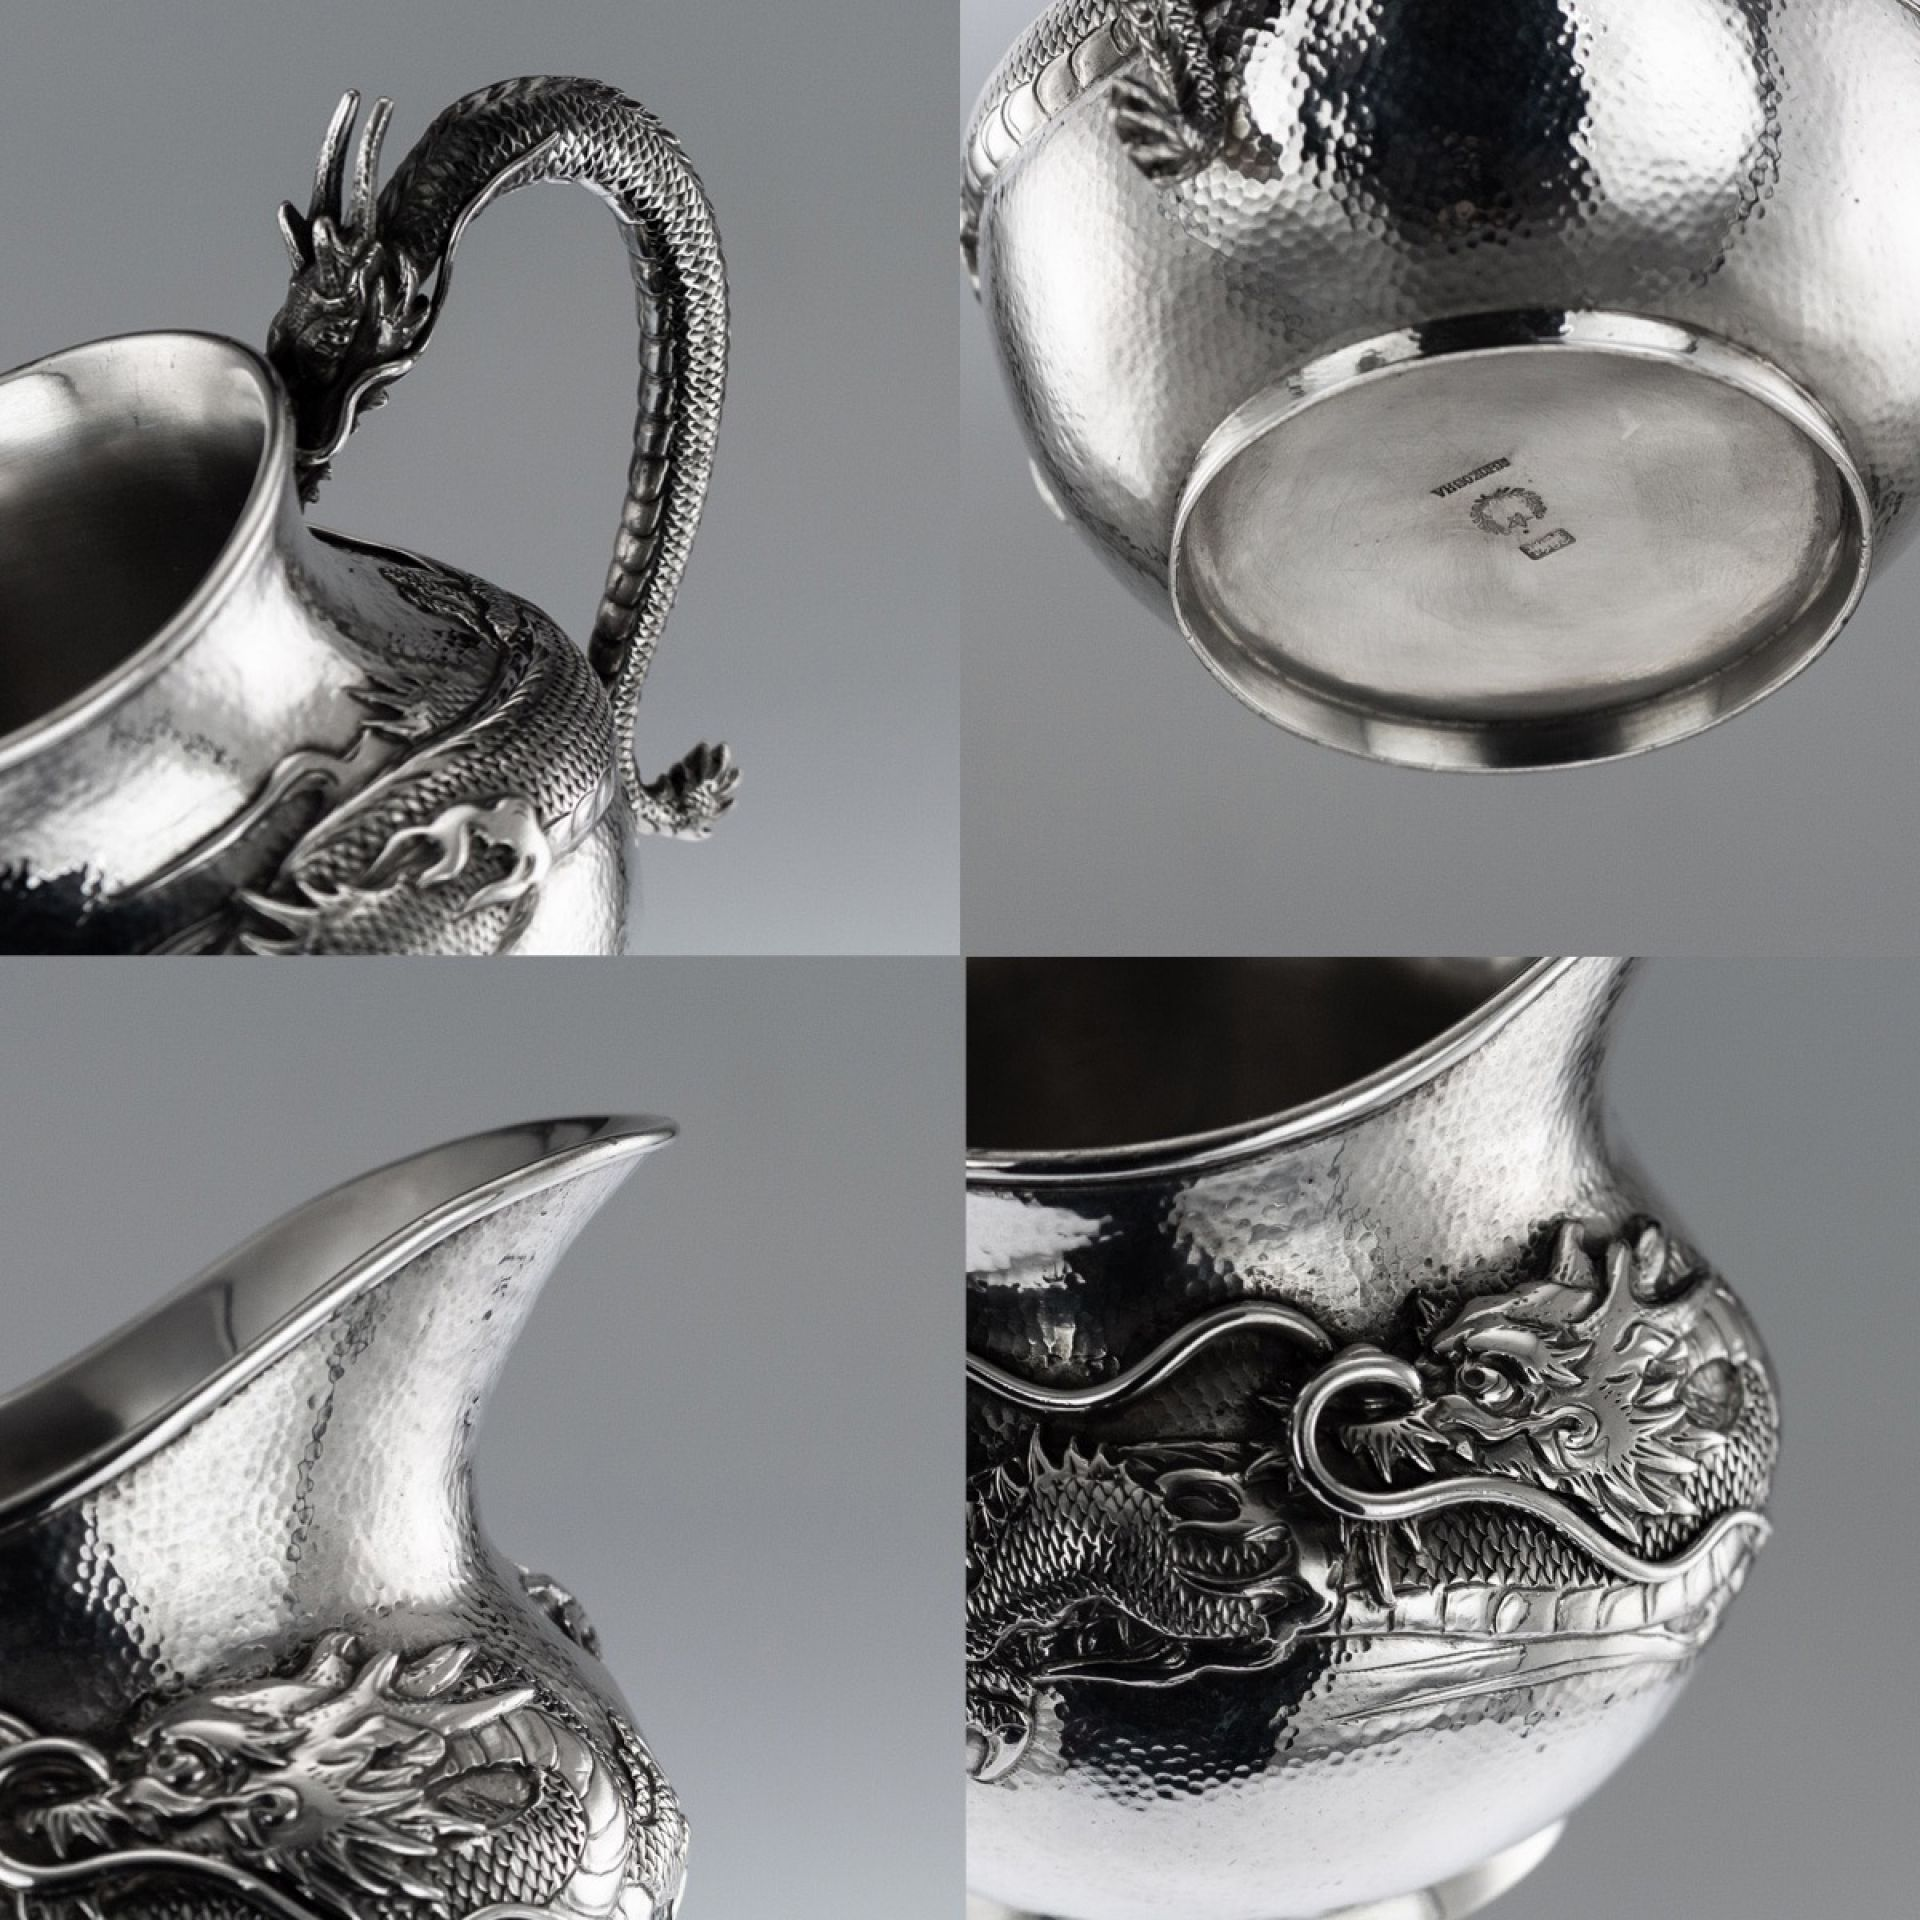 ANTIQUE 20thC JAPANESE SOLID SILVER DRAGON TEA & COFFEE SET, SHOKOSHA c.1900